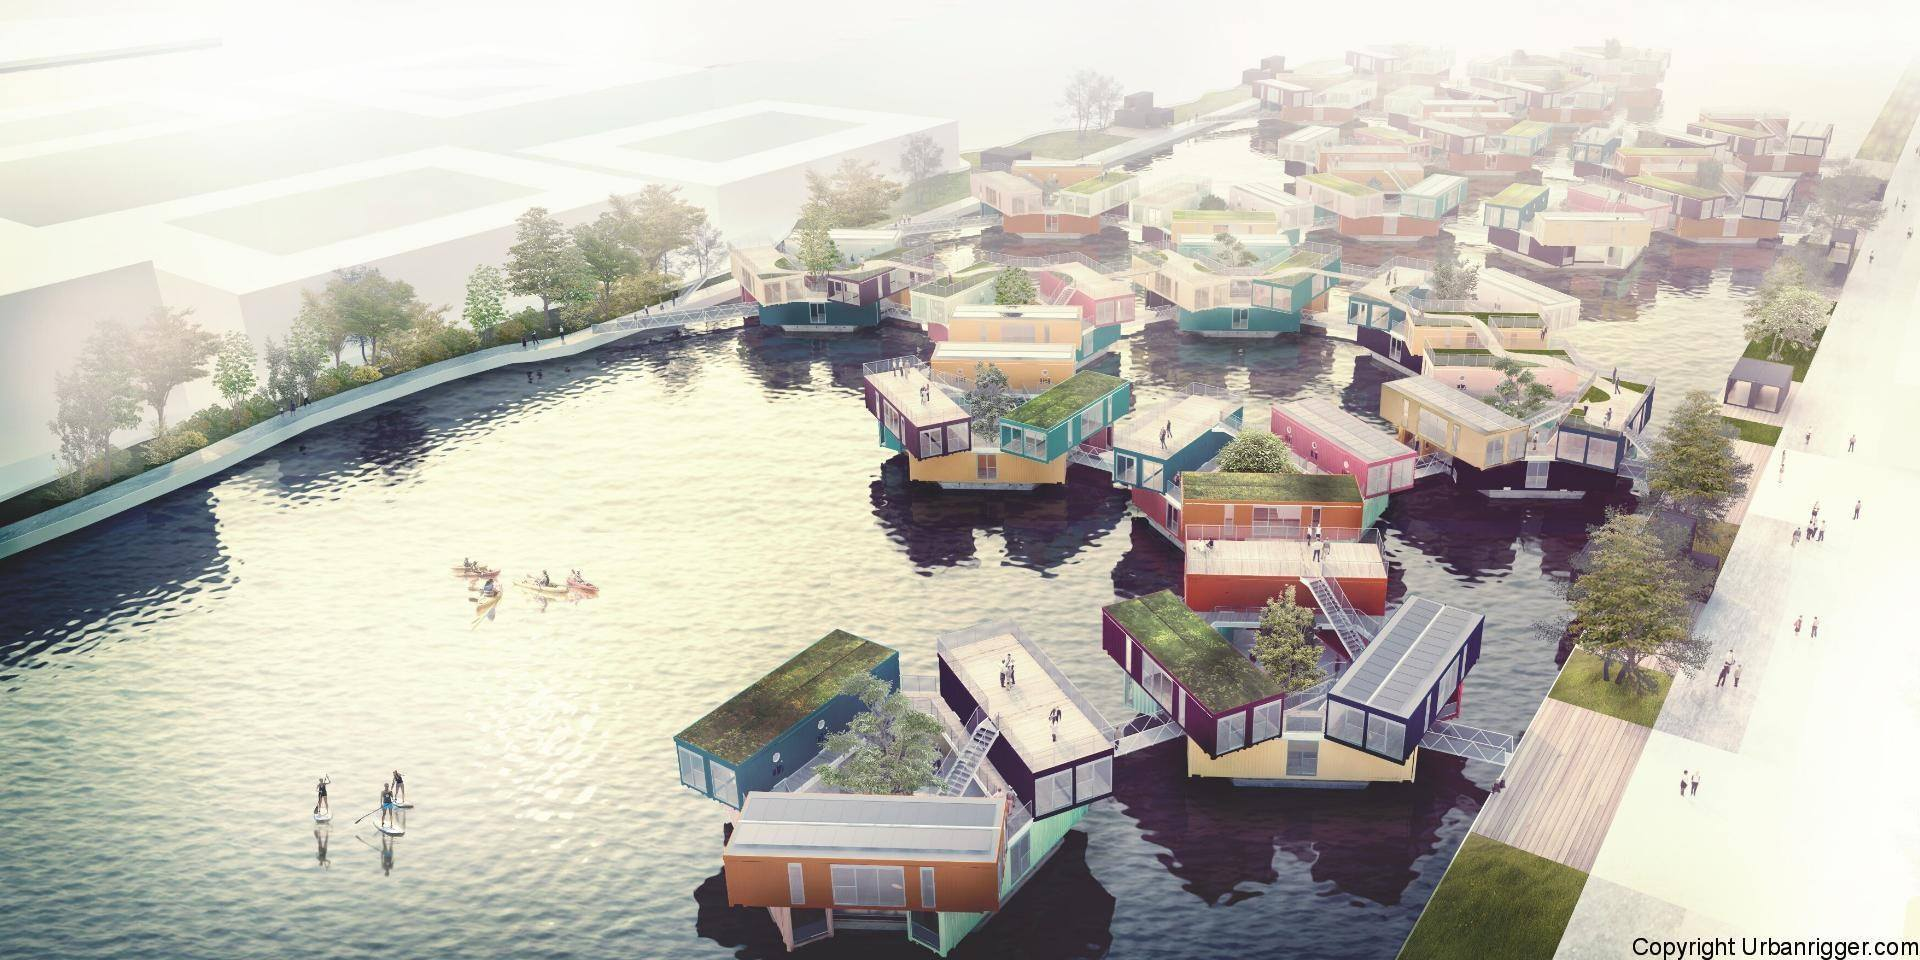 Bjarke Ingels, Urban Rigger, Kim Loudrup shipping container architecture, affordable student housing